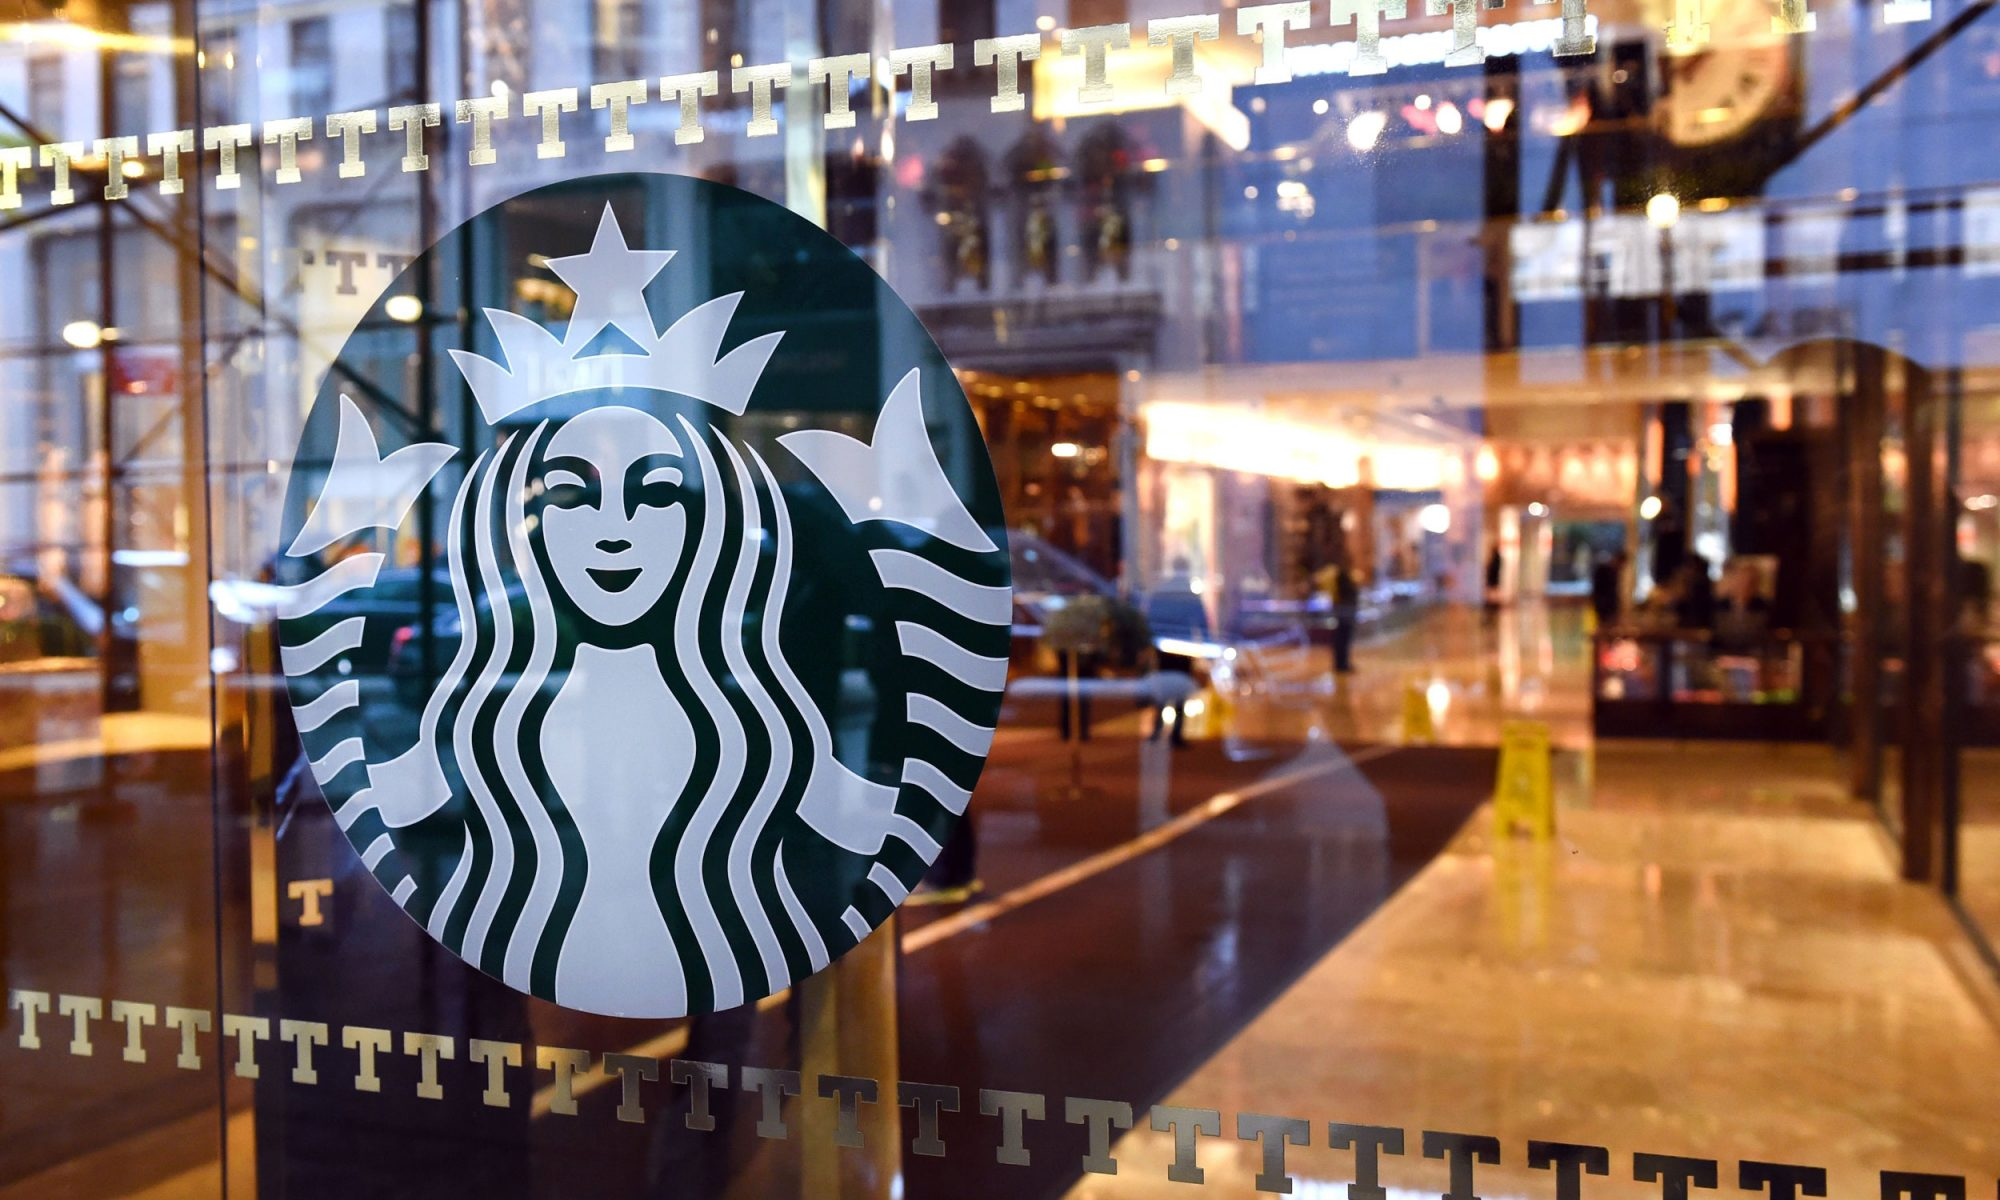 EC: A Fake Starbucks Ad Is Targeting Undocumented Immigrants